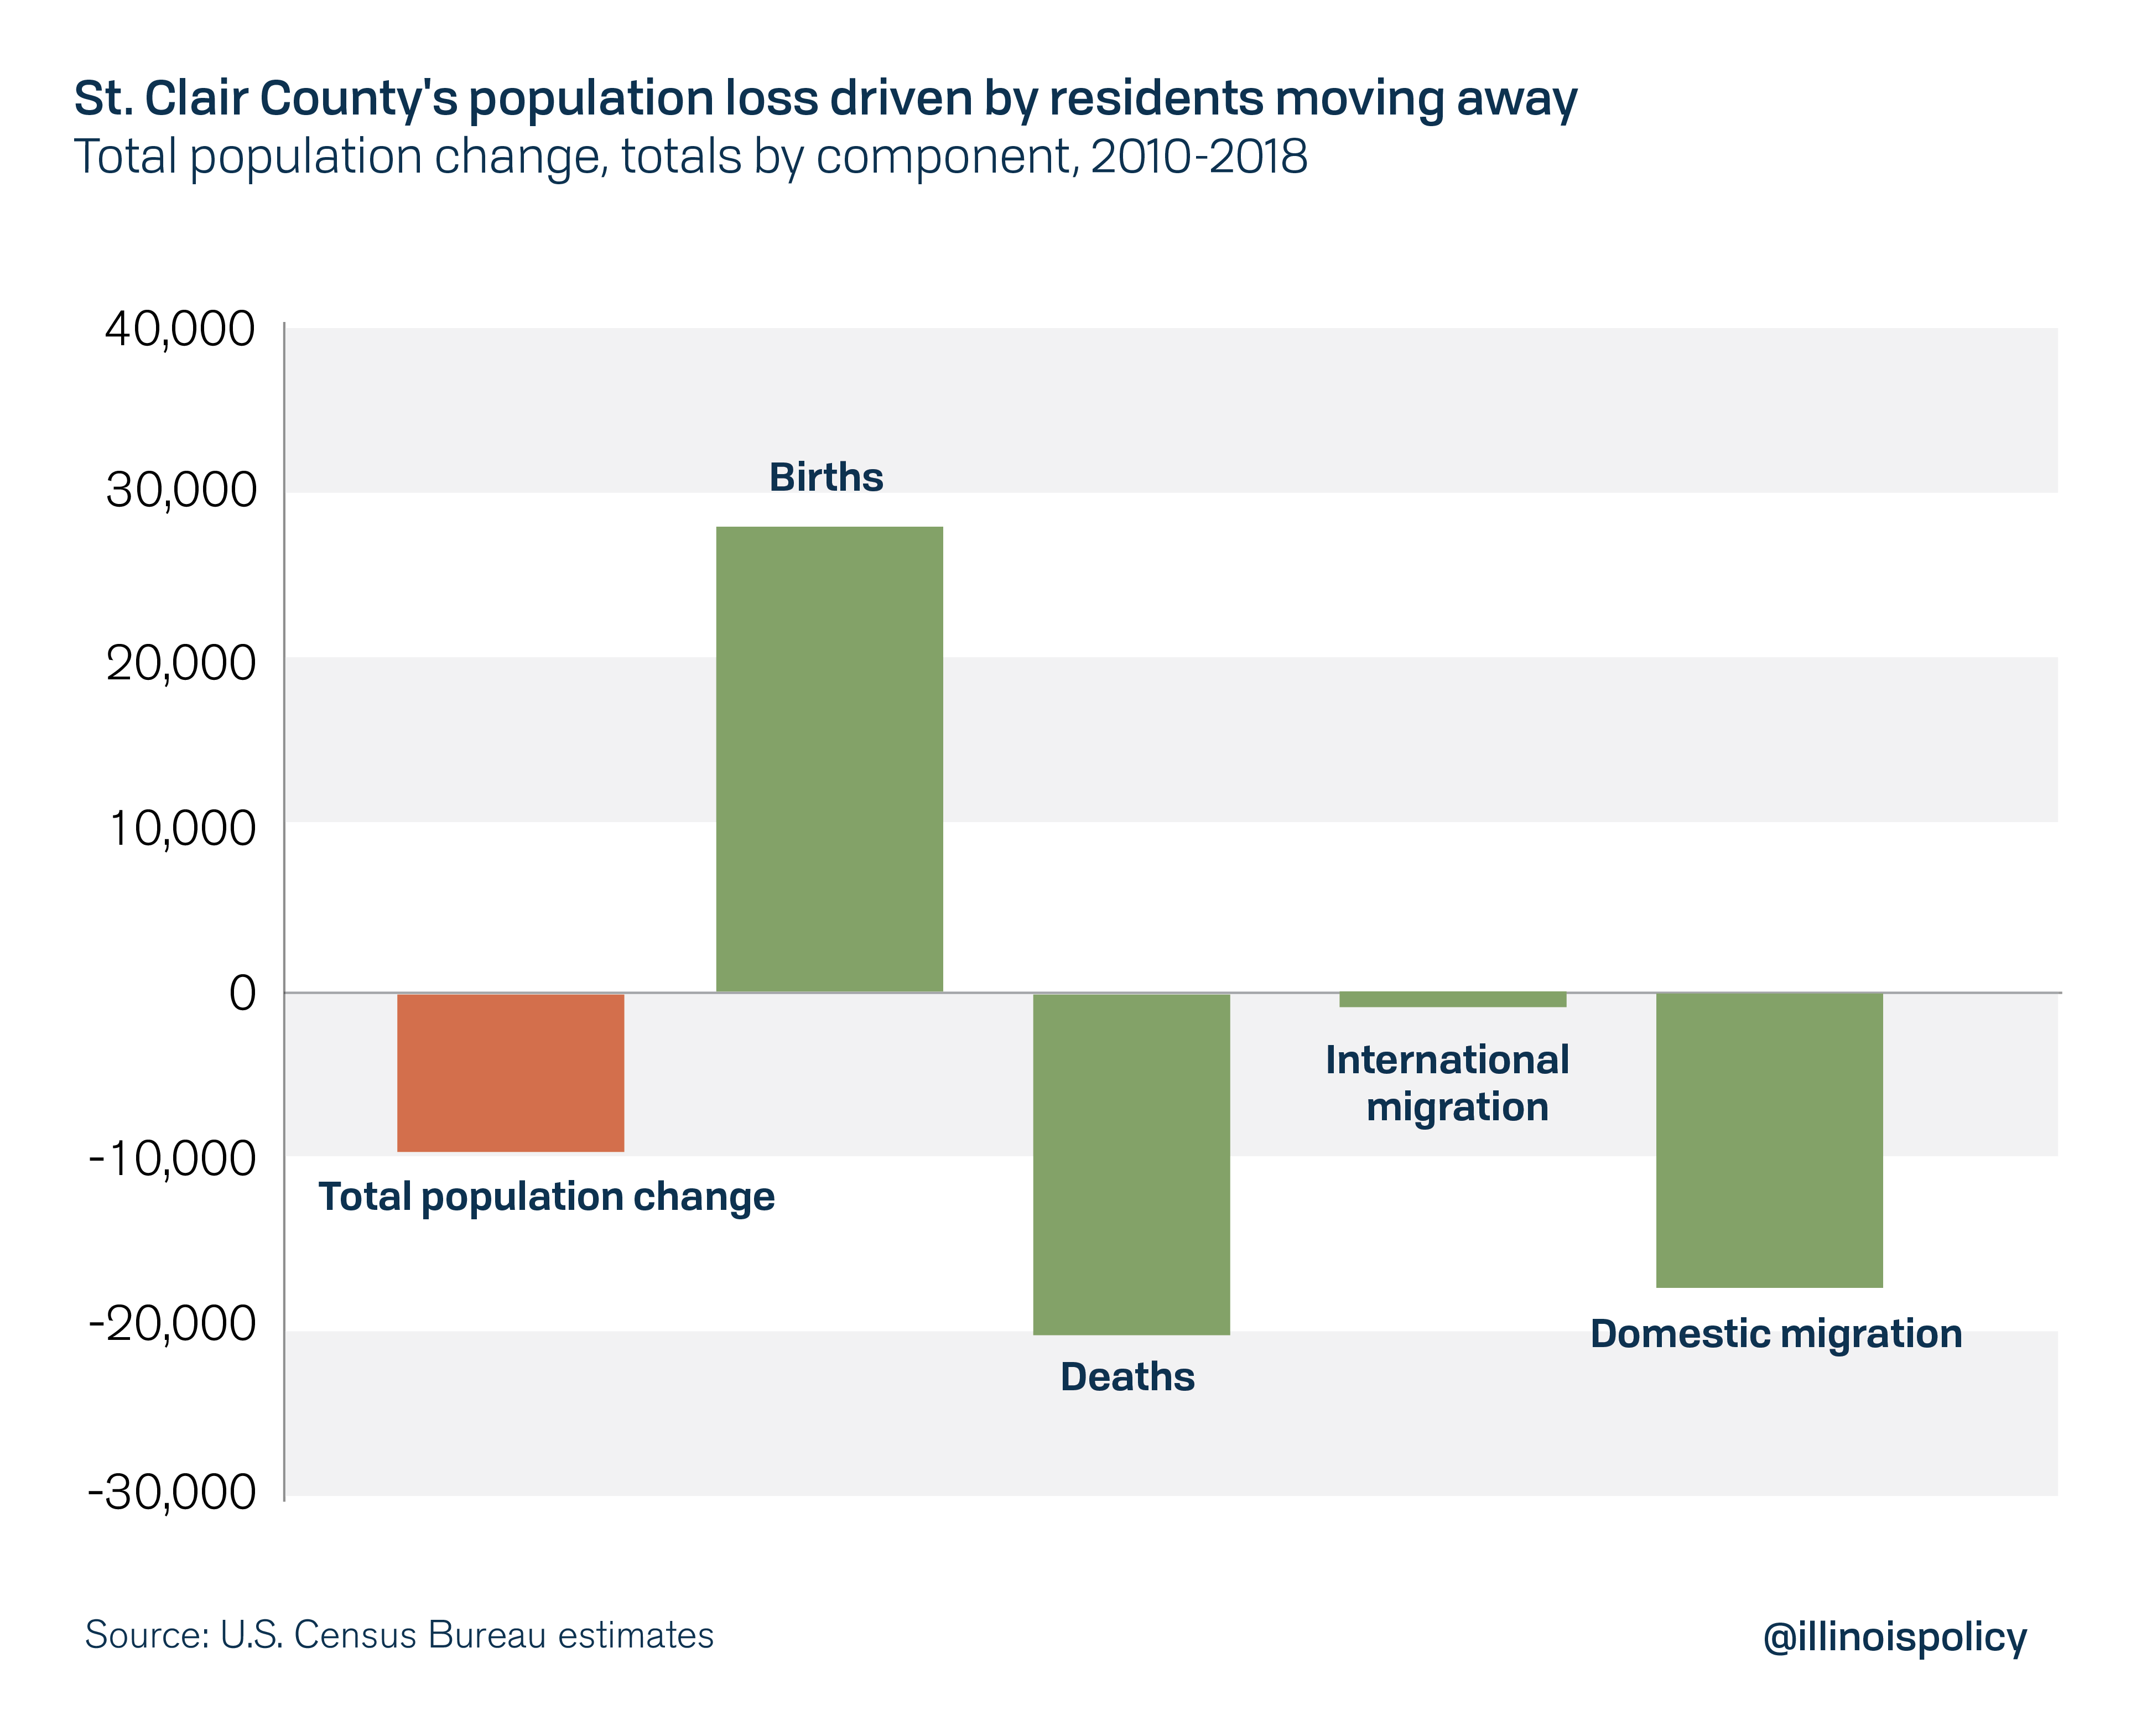 St. Clair County's population loss driven by residents moving away